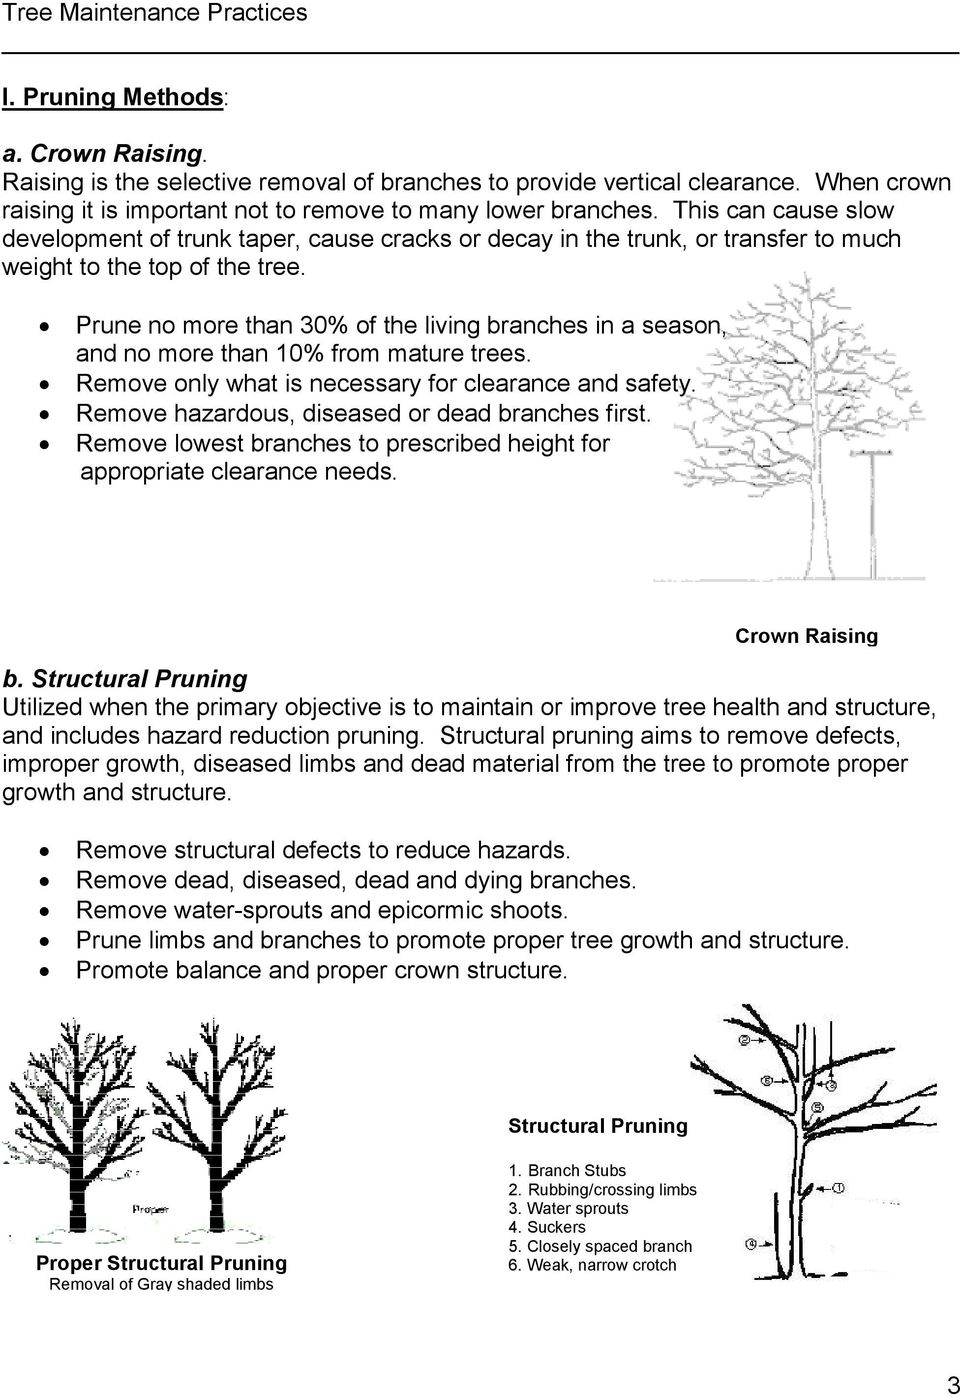 Prune no more than 30% of the living branches in a season, and no more than 10% from mature trees. Remove only what is necessary for clearance and safety.